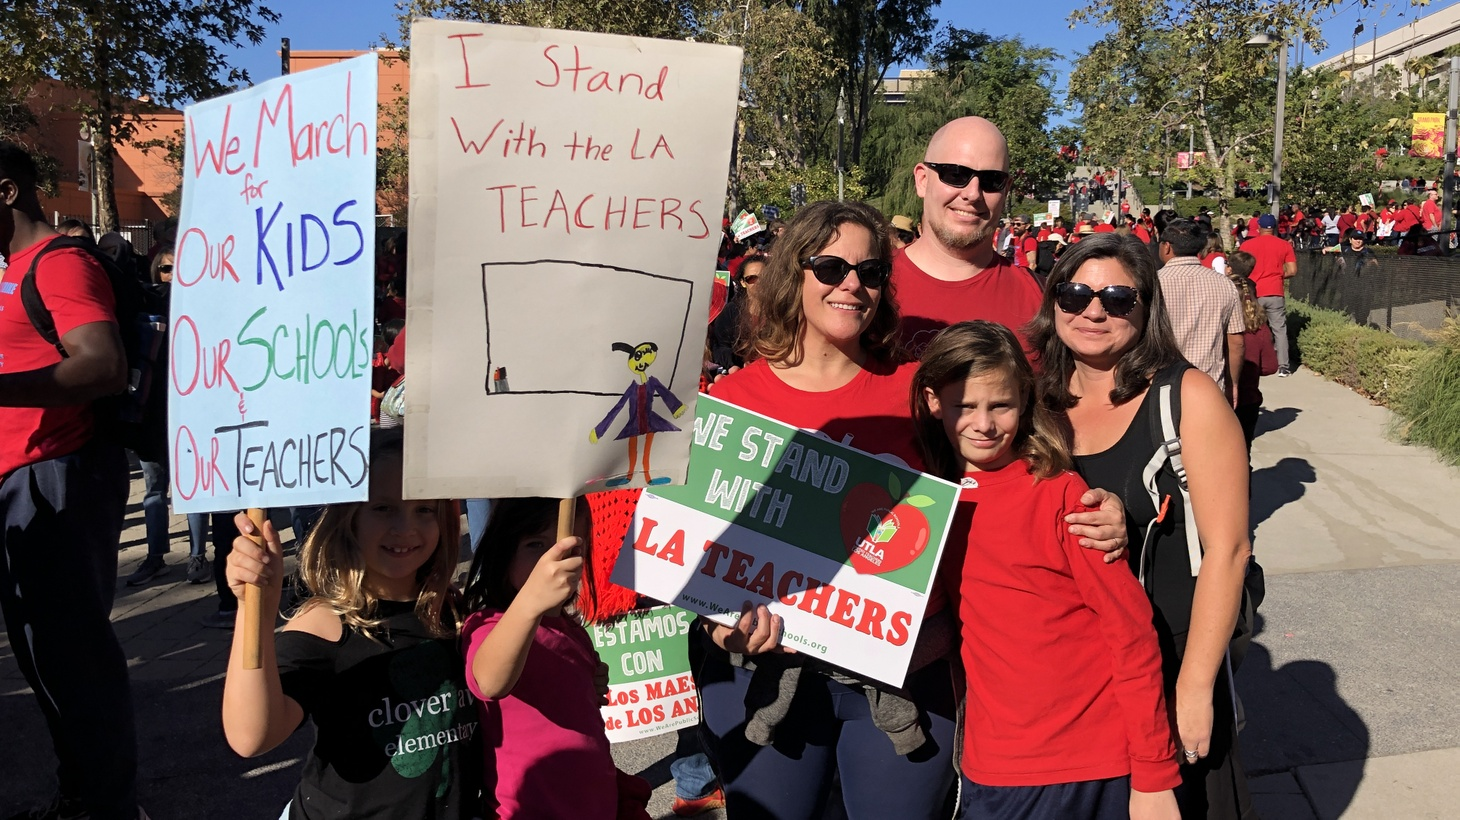 """Parents and students at Clover Avenue Elementary march in support of the LAUSD teachers and to shed light on the """"Charter issue we have here in LA."""""""